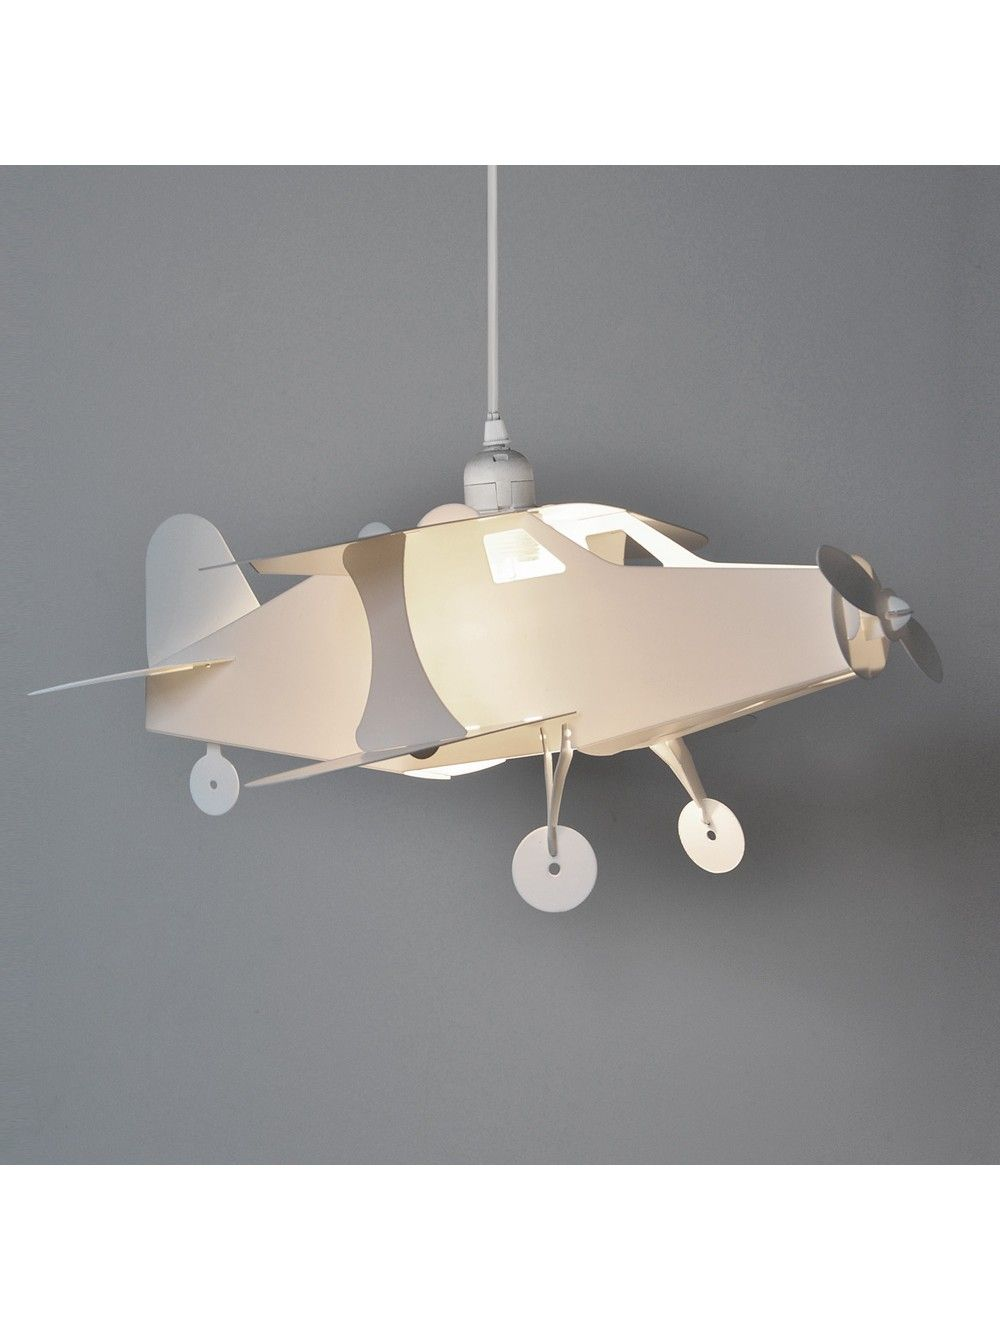 childrens bedroom light shades